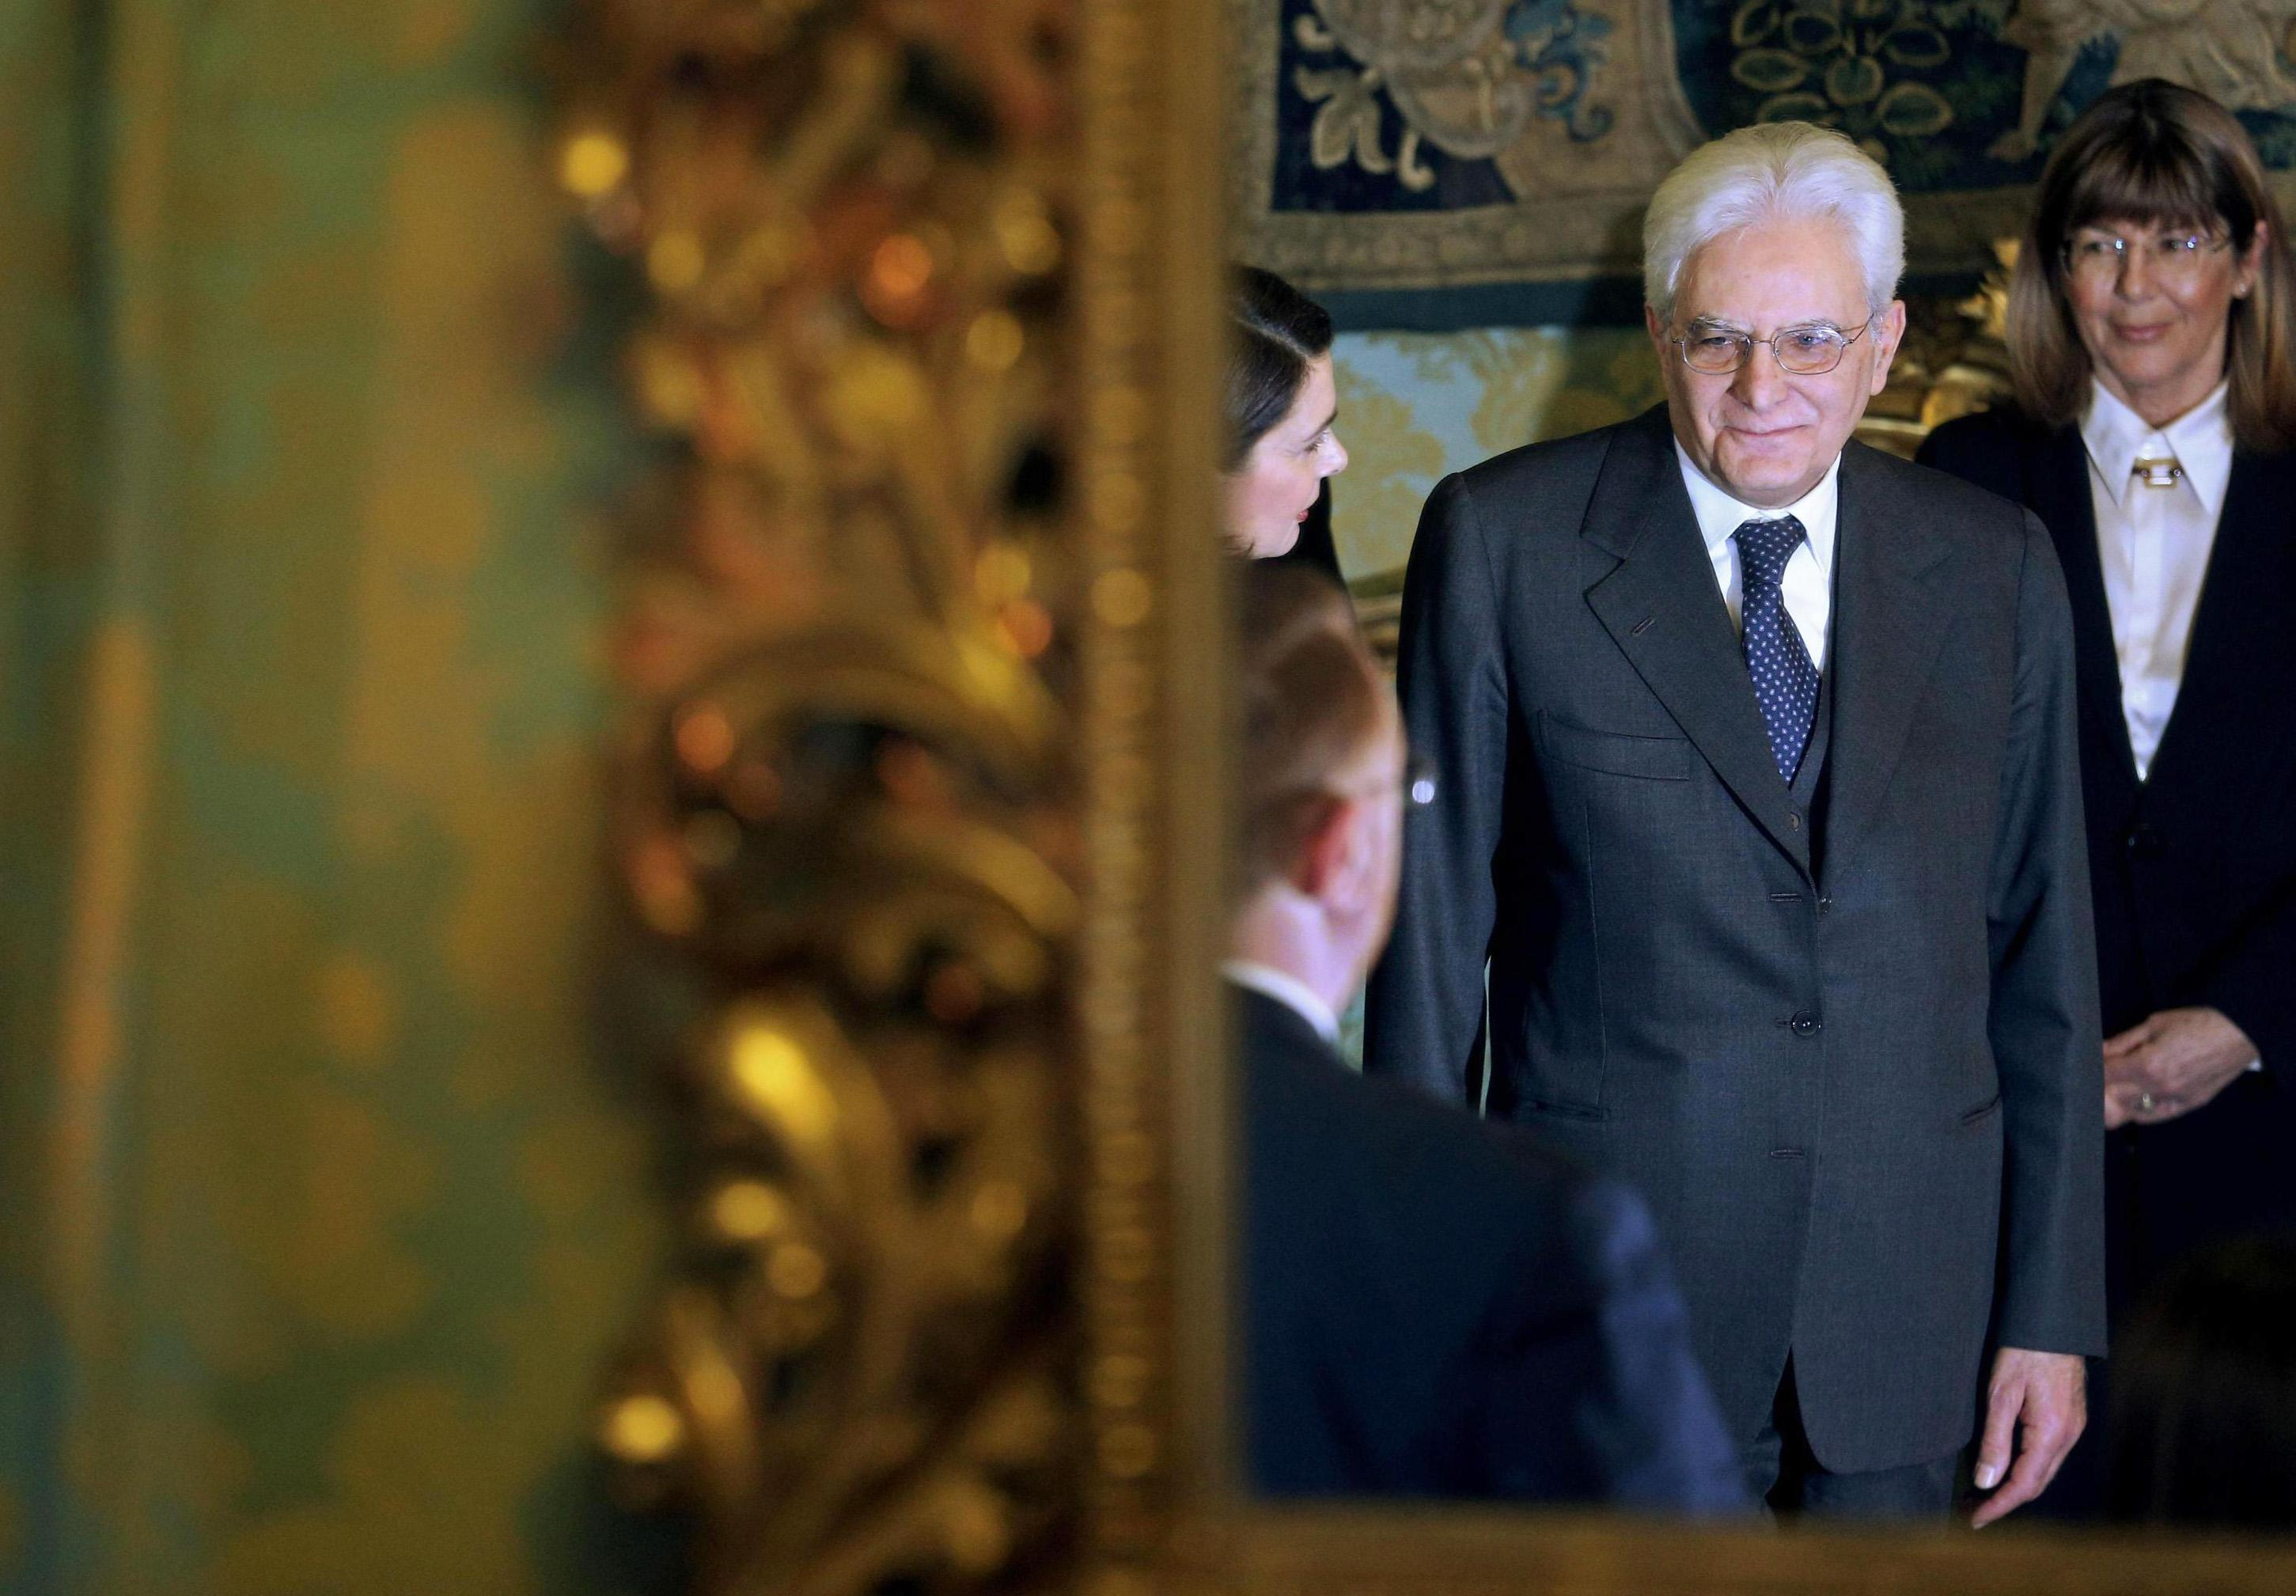 Italy's lawmakers elect Sergio Mattarella as president